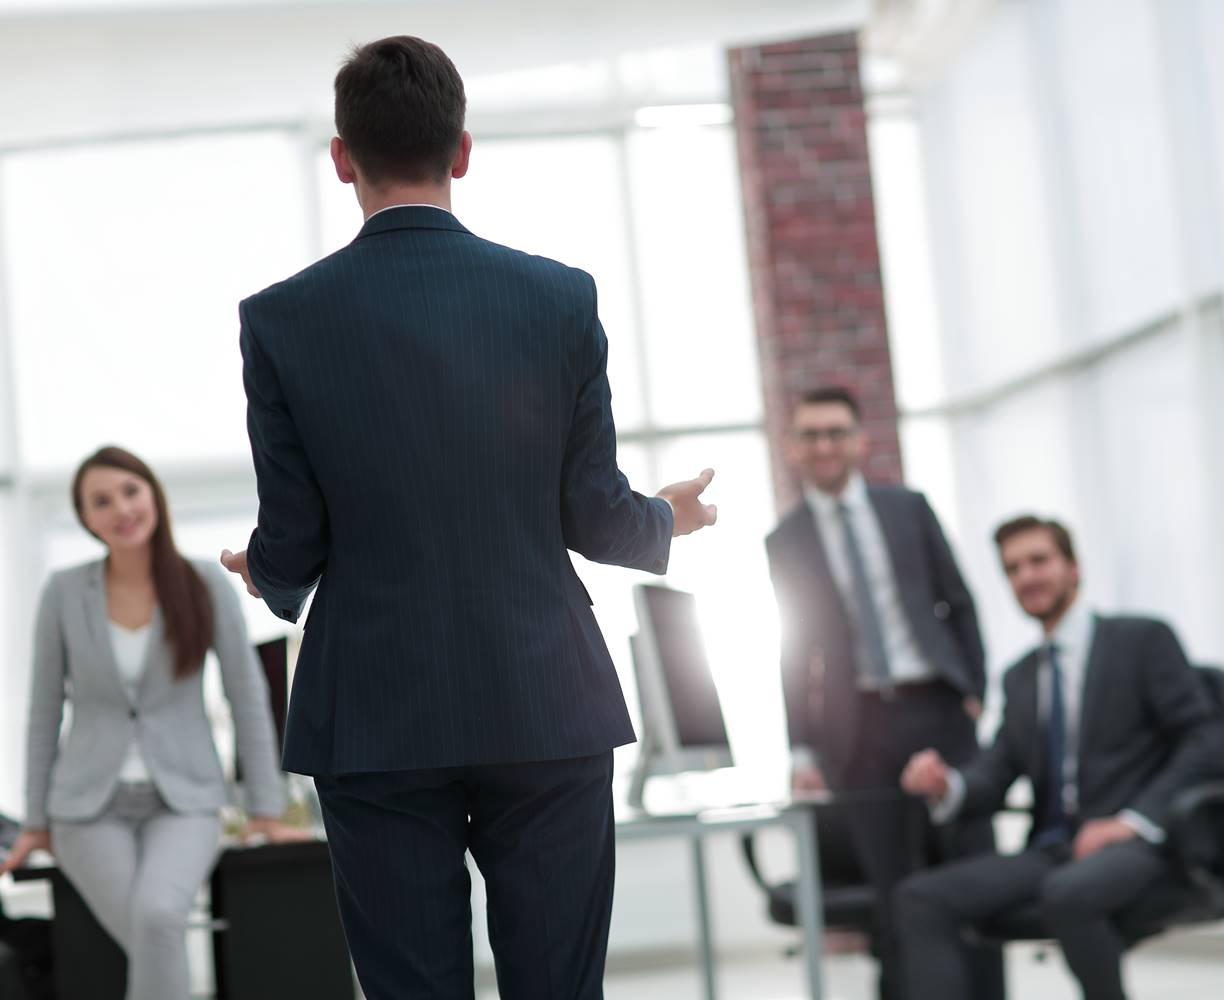 Certified sales leader training employees